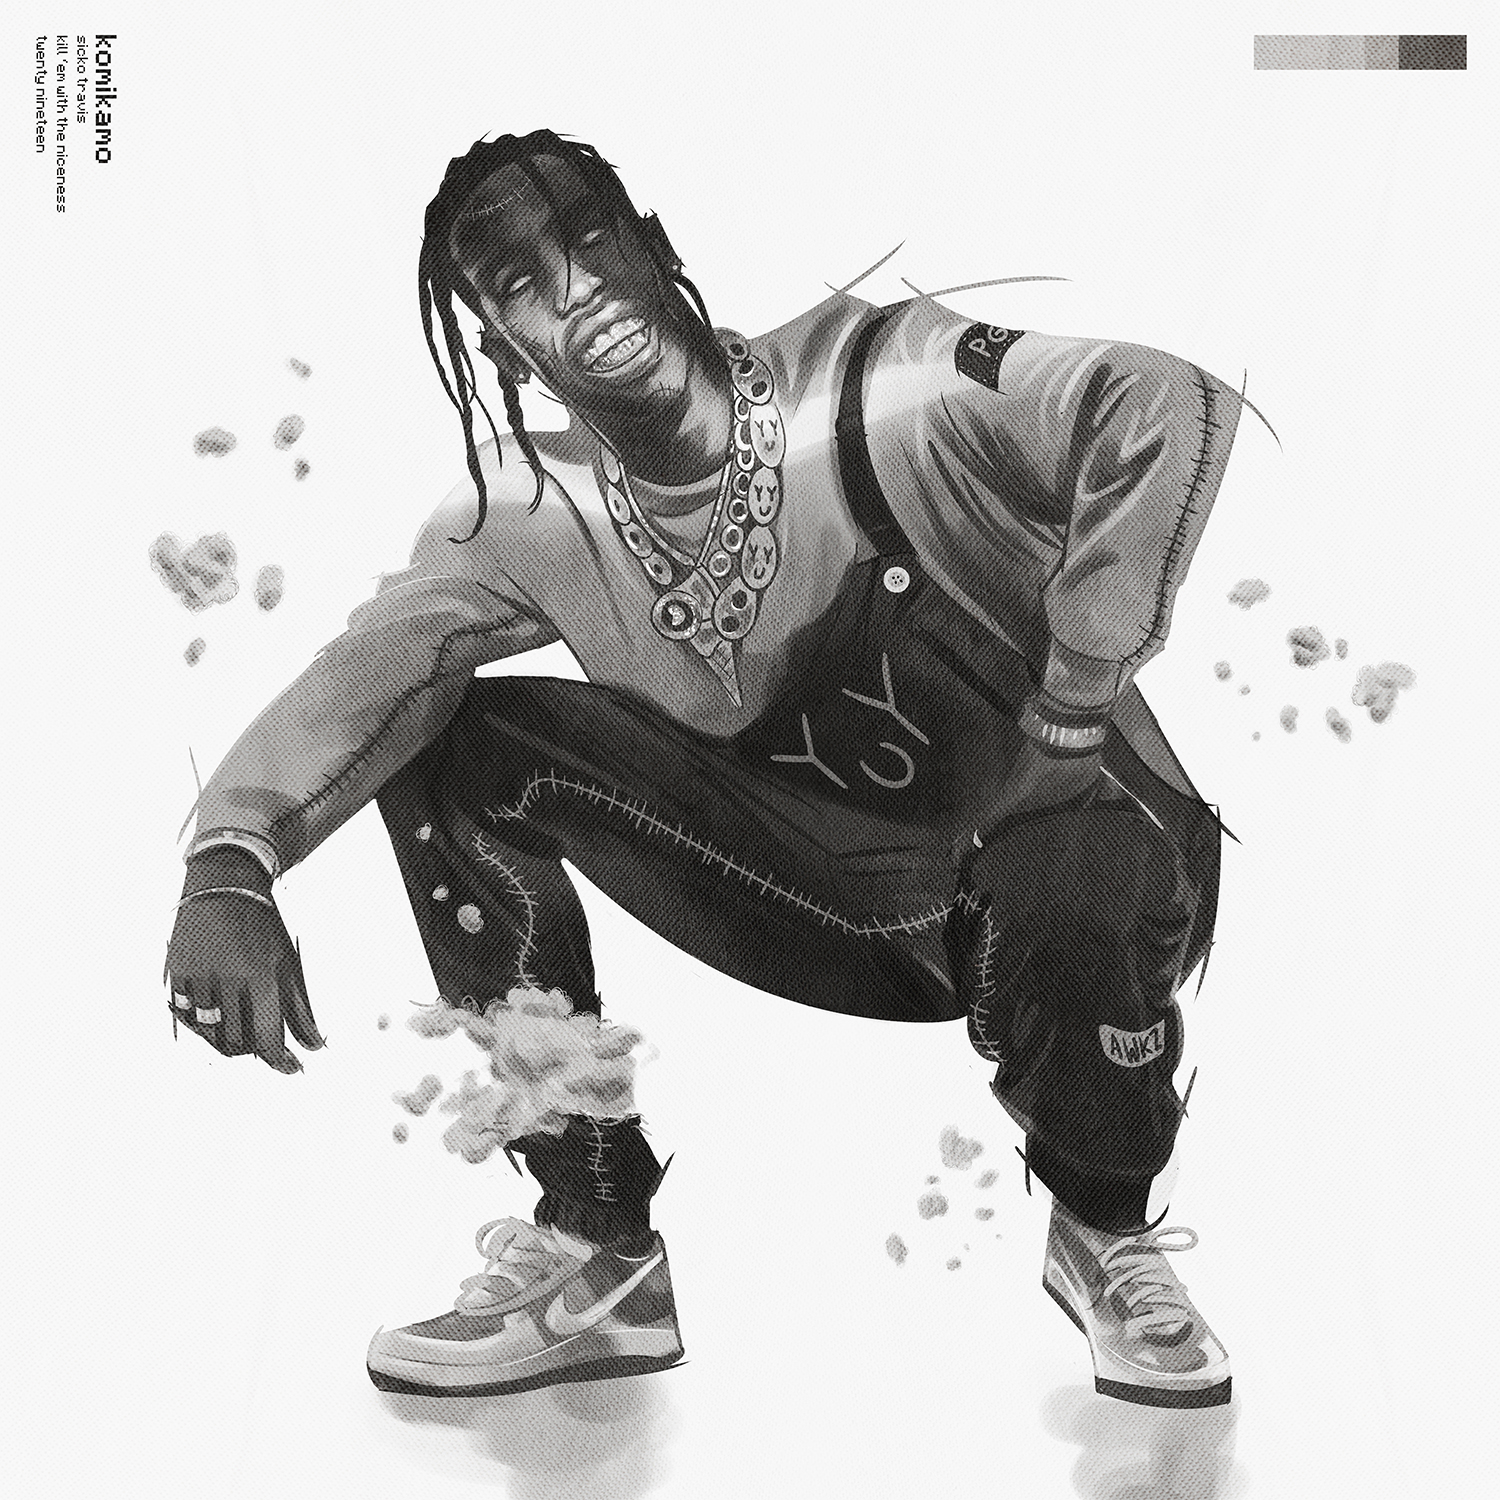 SICKO-TravisScott-Final2.jpg